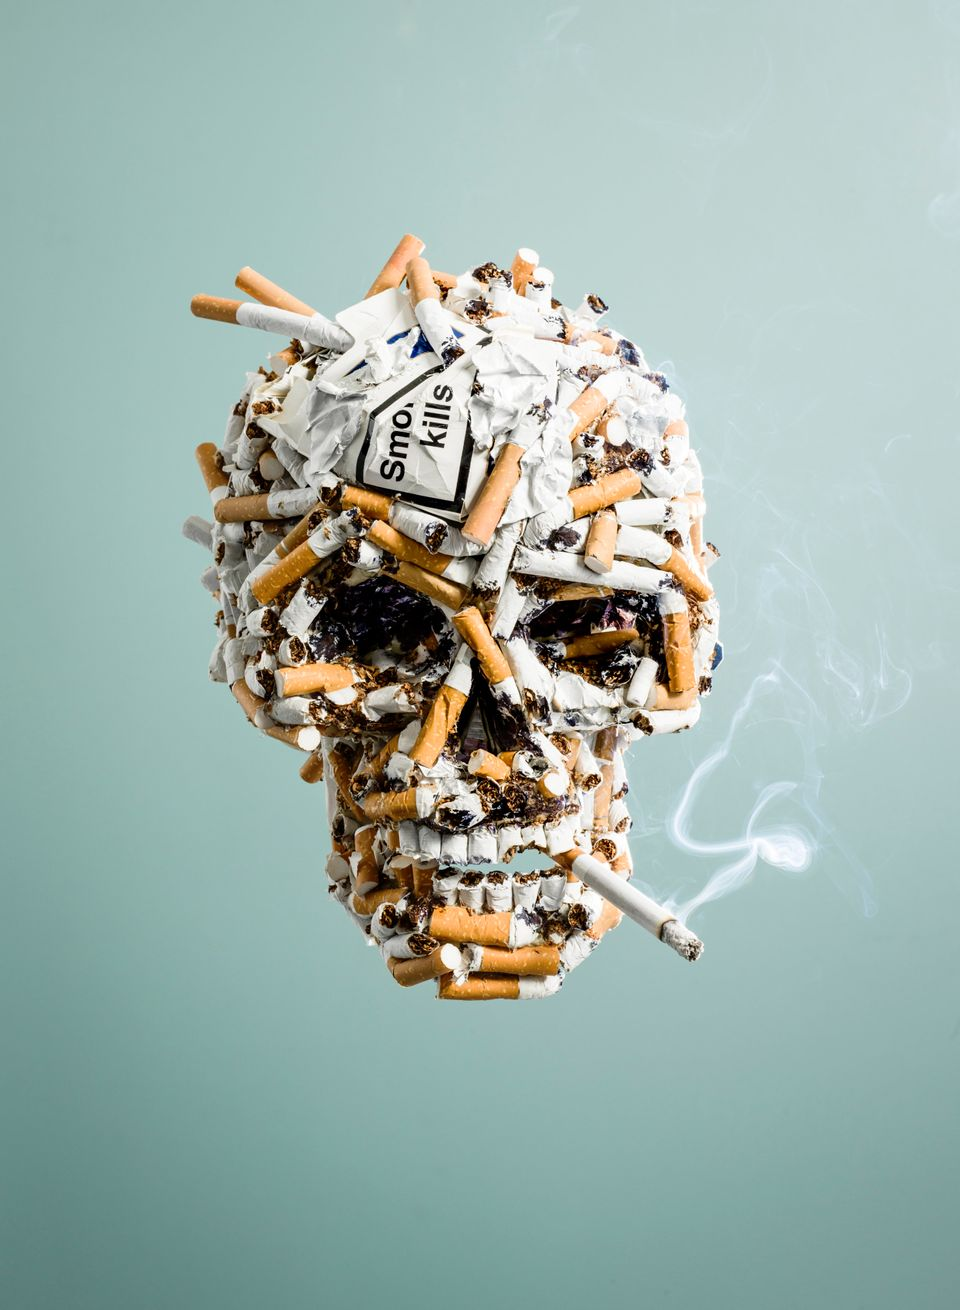 Every cigarette you smoke reduces your expected life span by 11 minutes.